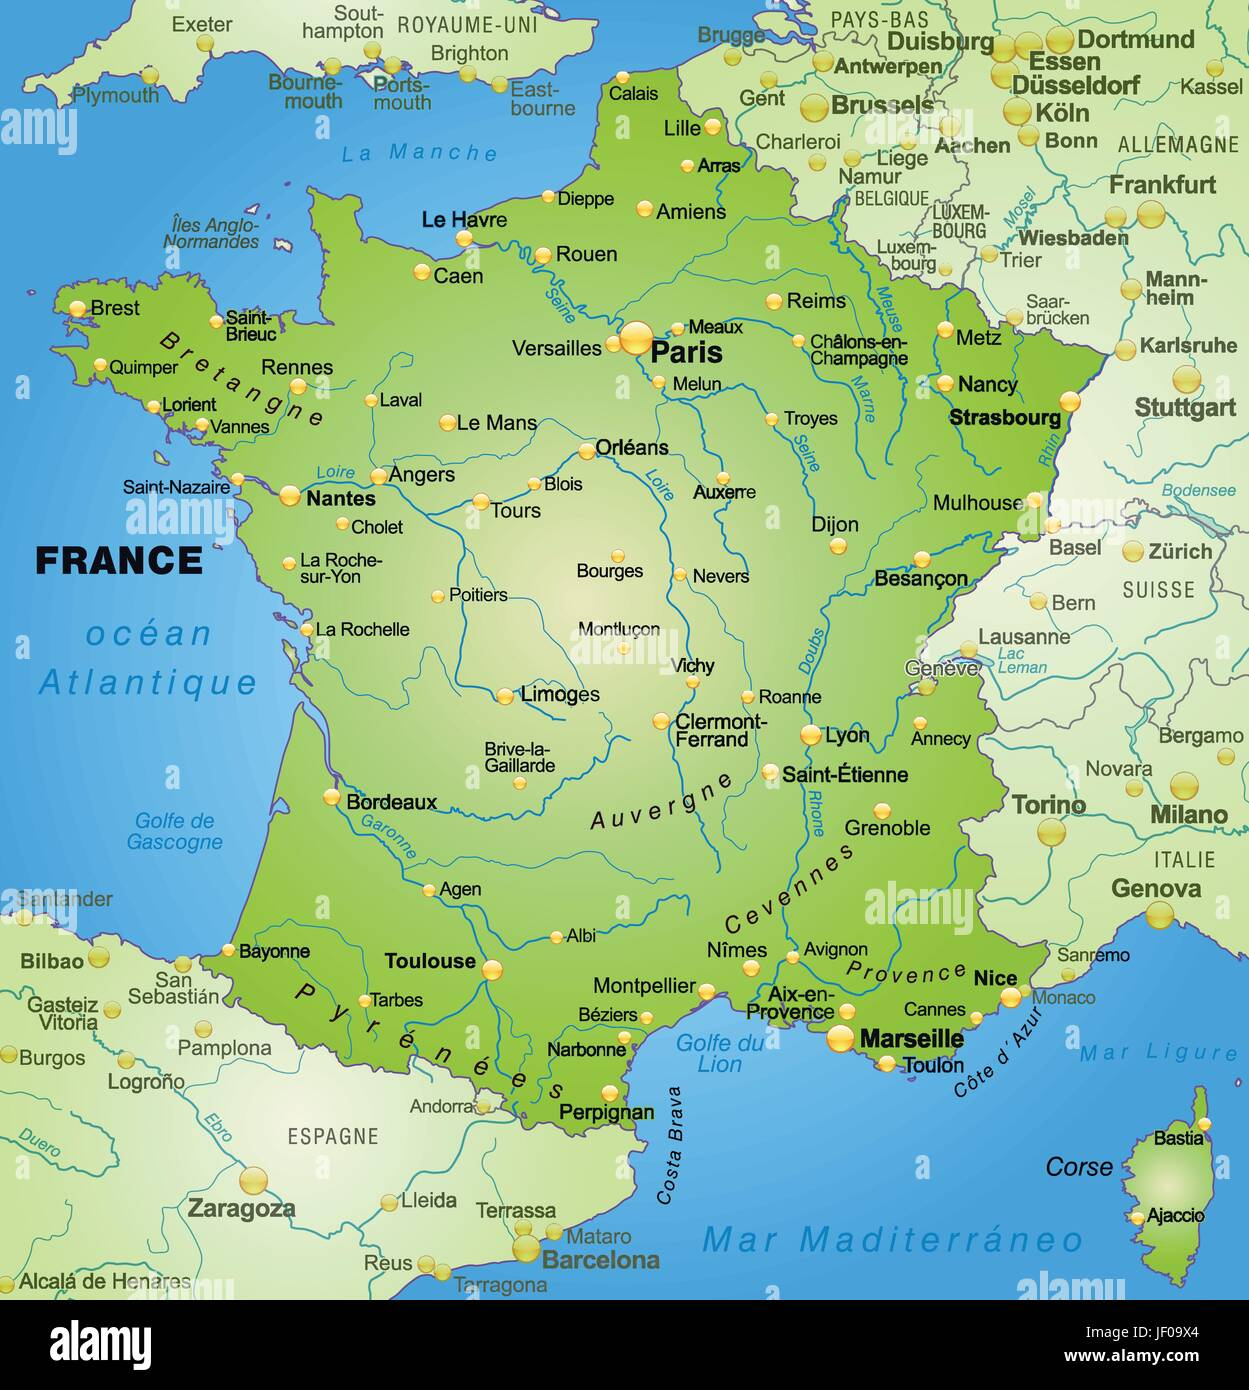 Card atlas map of the world map france border card synopsis card atlas map of the world map france border card synopsis borders gumiabroncs Image collections